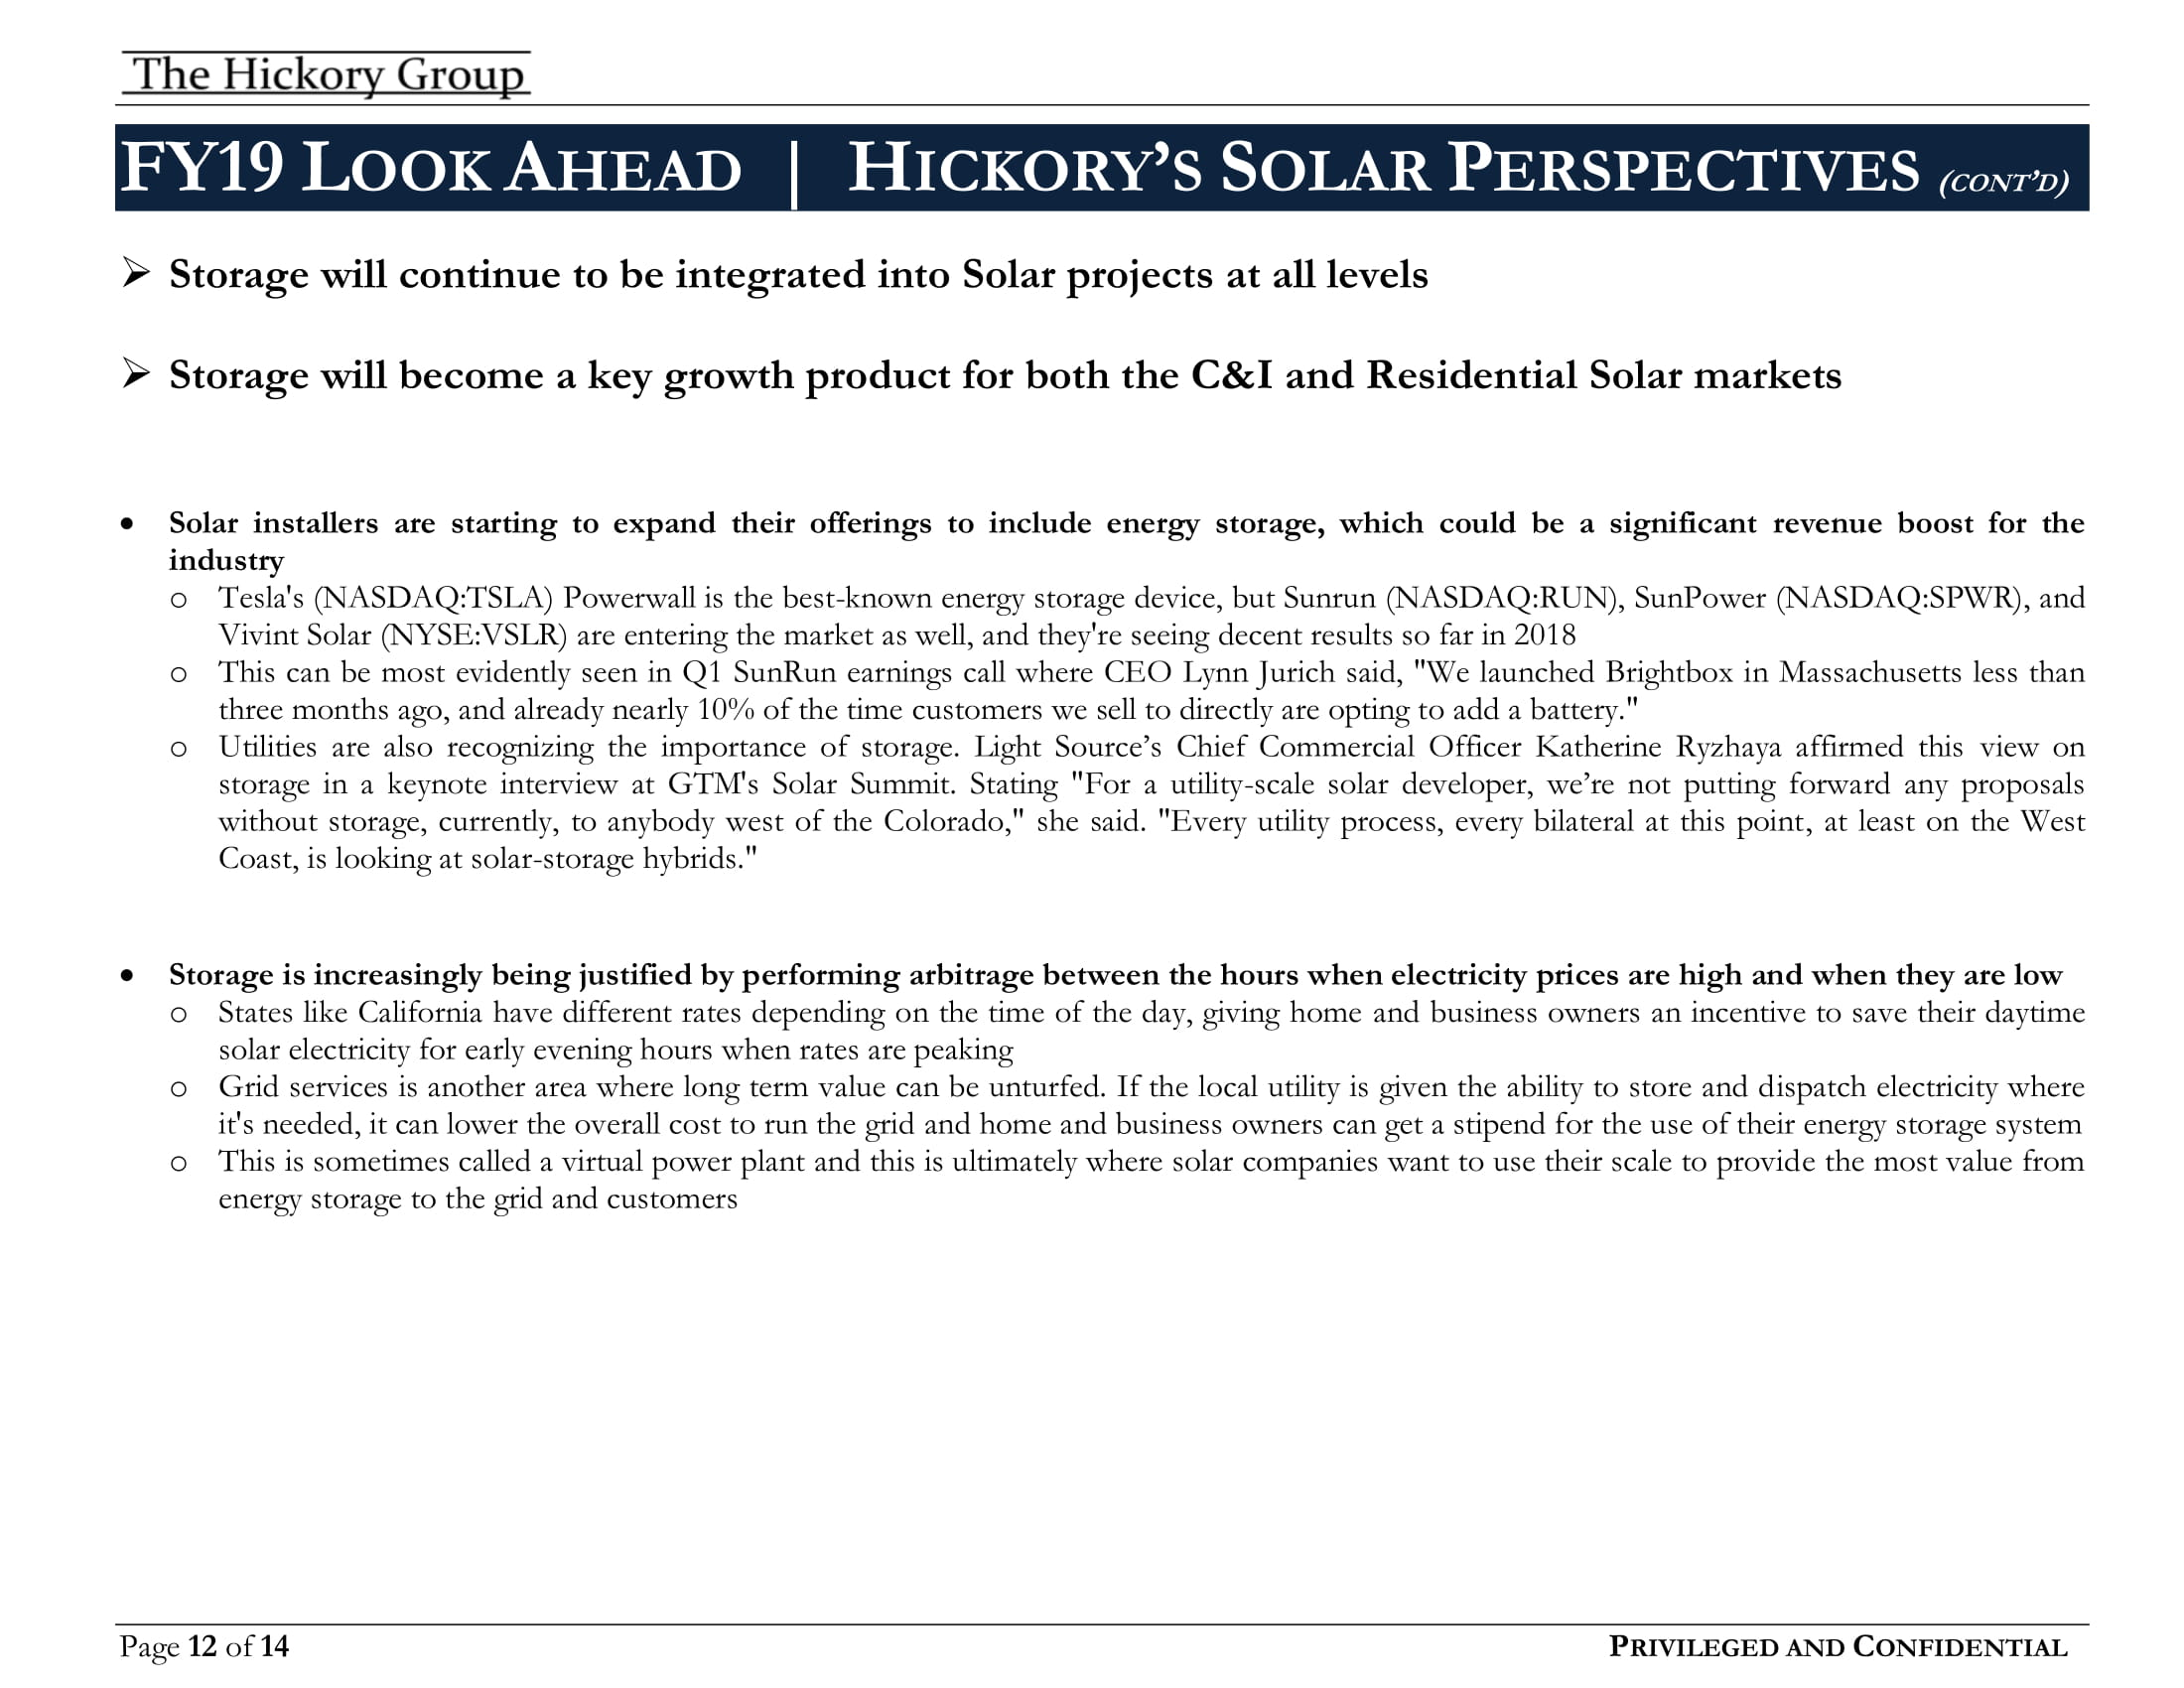 FINAL_THG Solar Flash Report FY18 Q3 (October 2018) Privileged and Confidential[1][1]-12.jpg